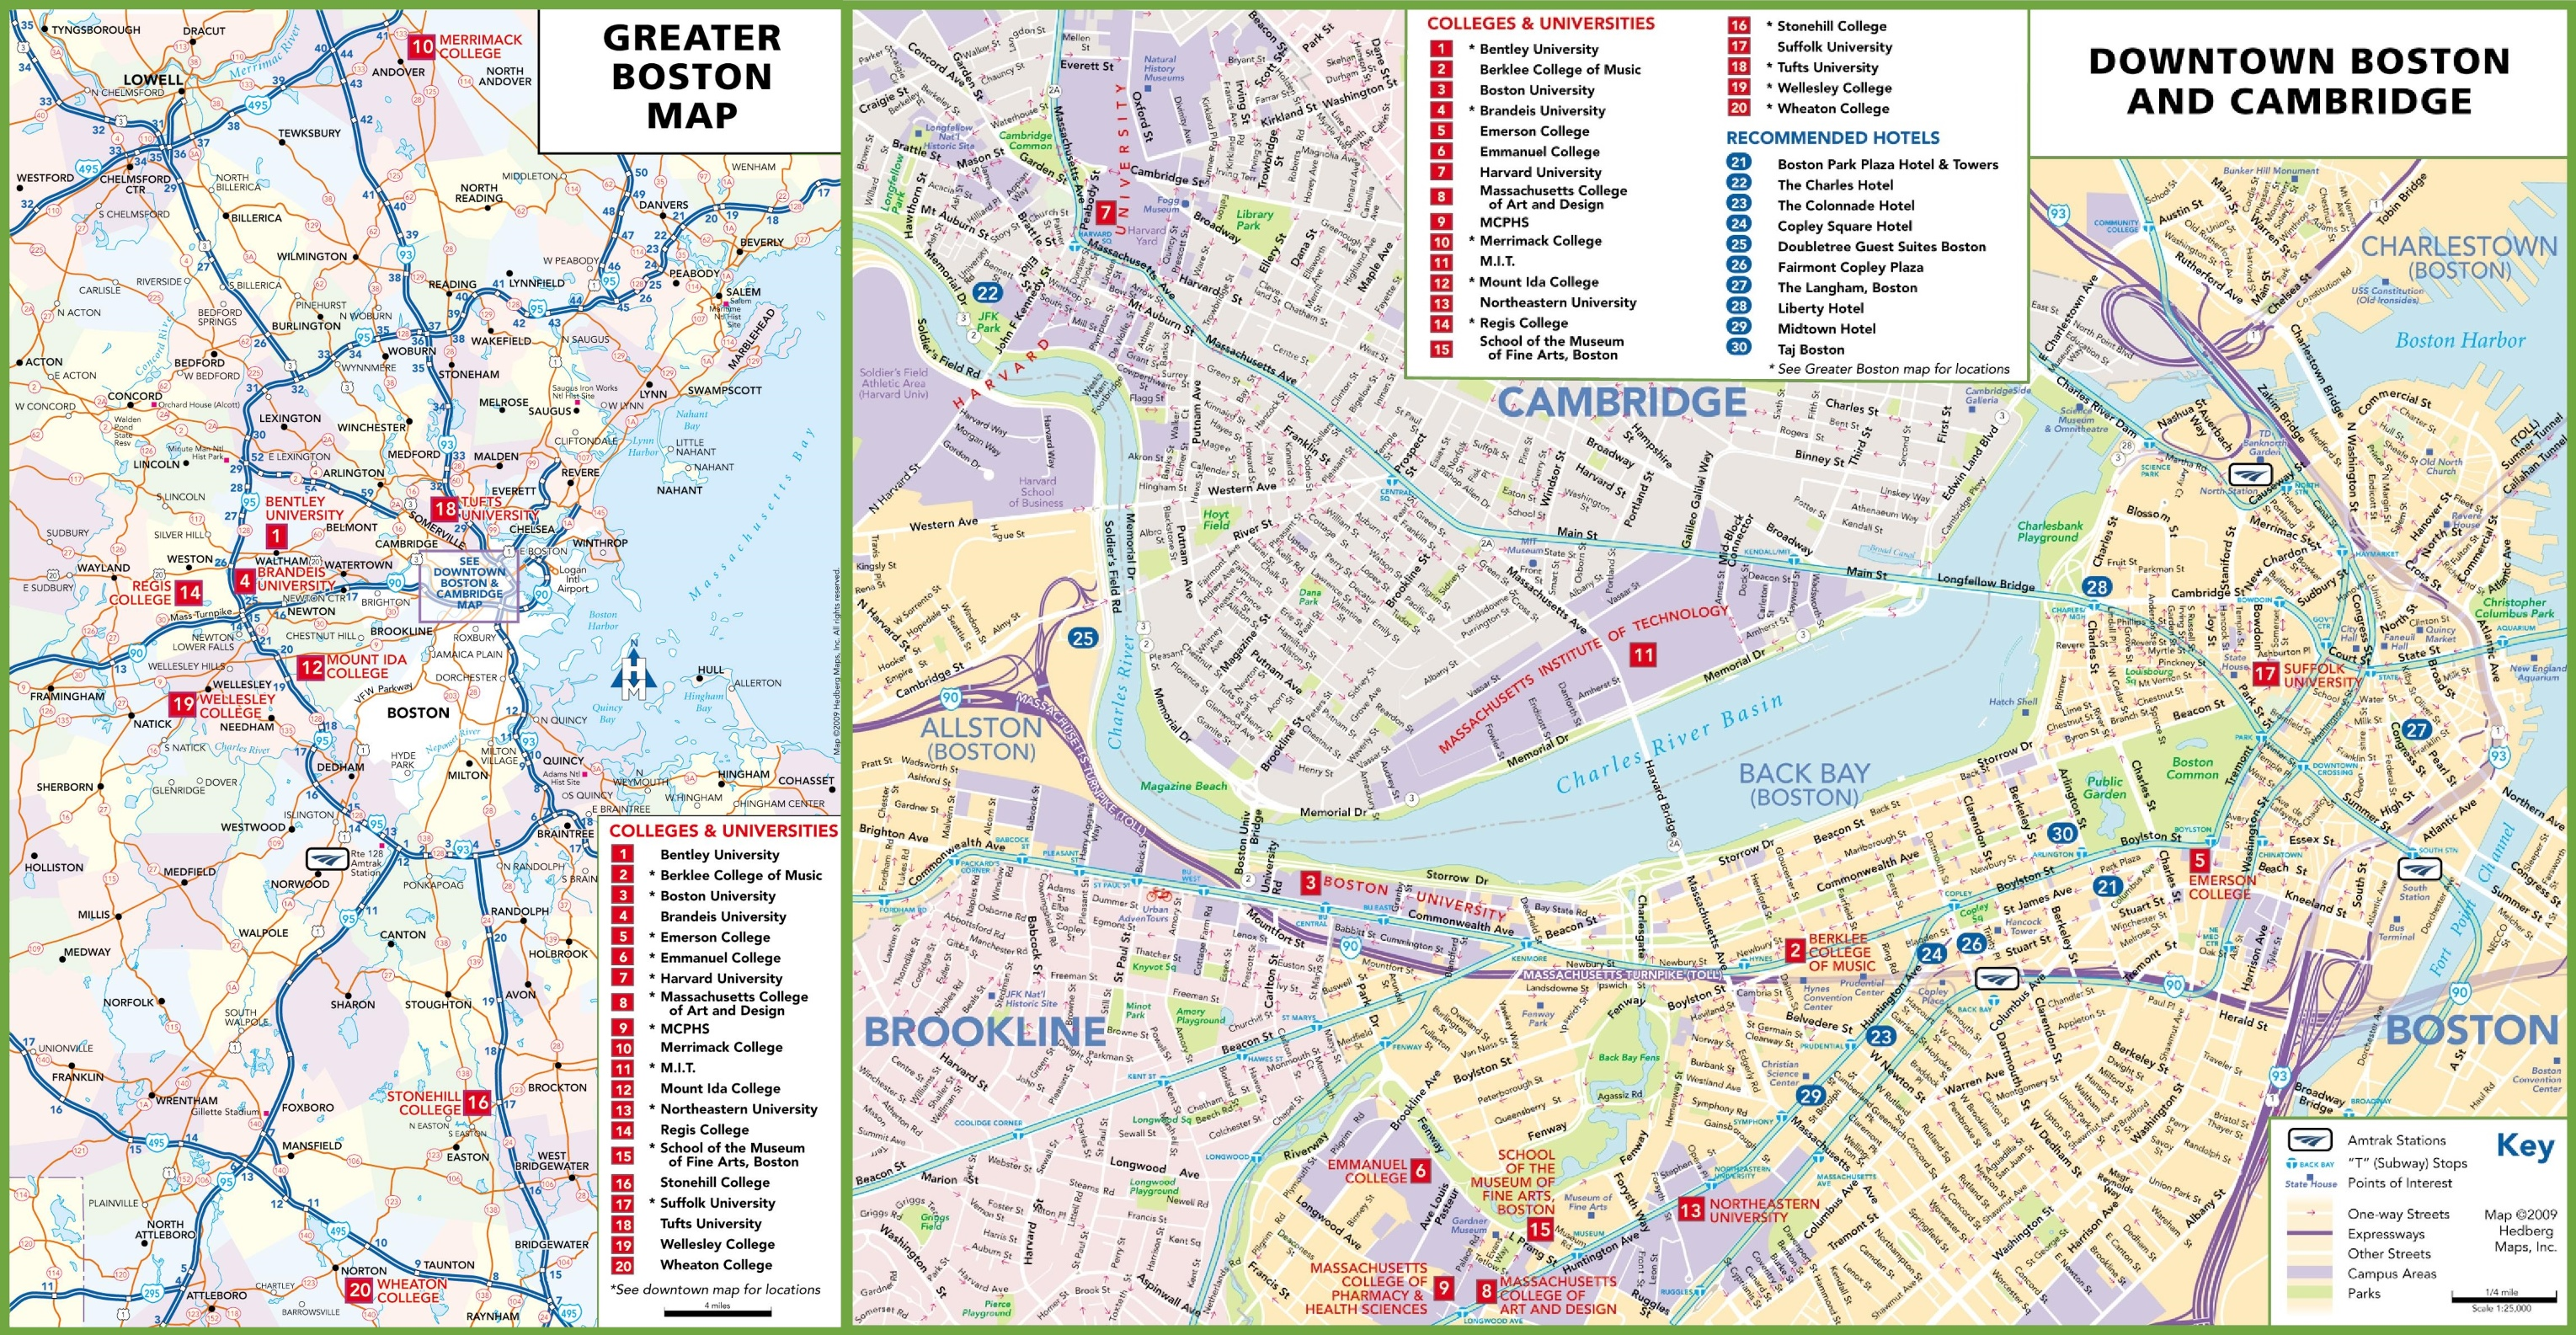 boston colleges and universities map -